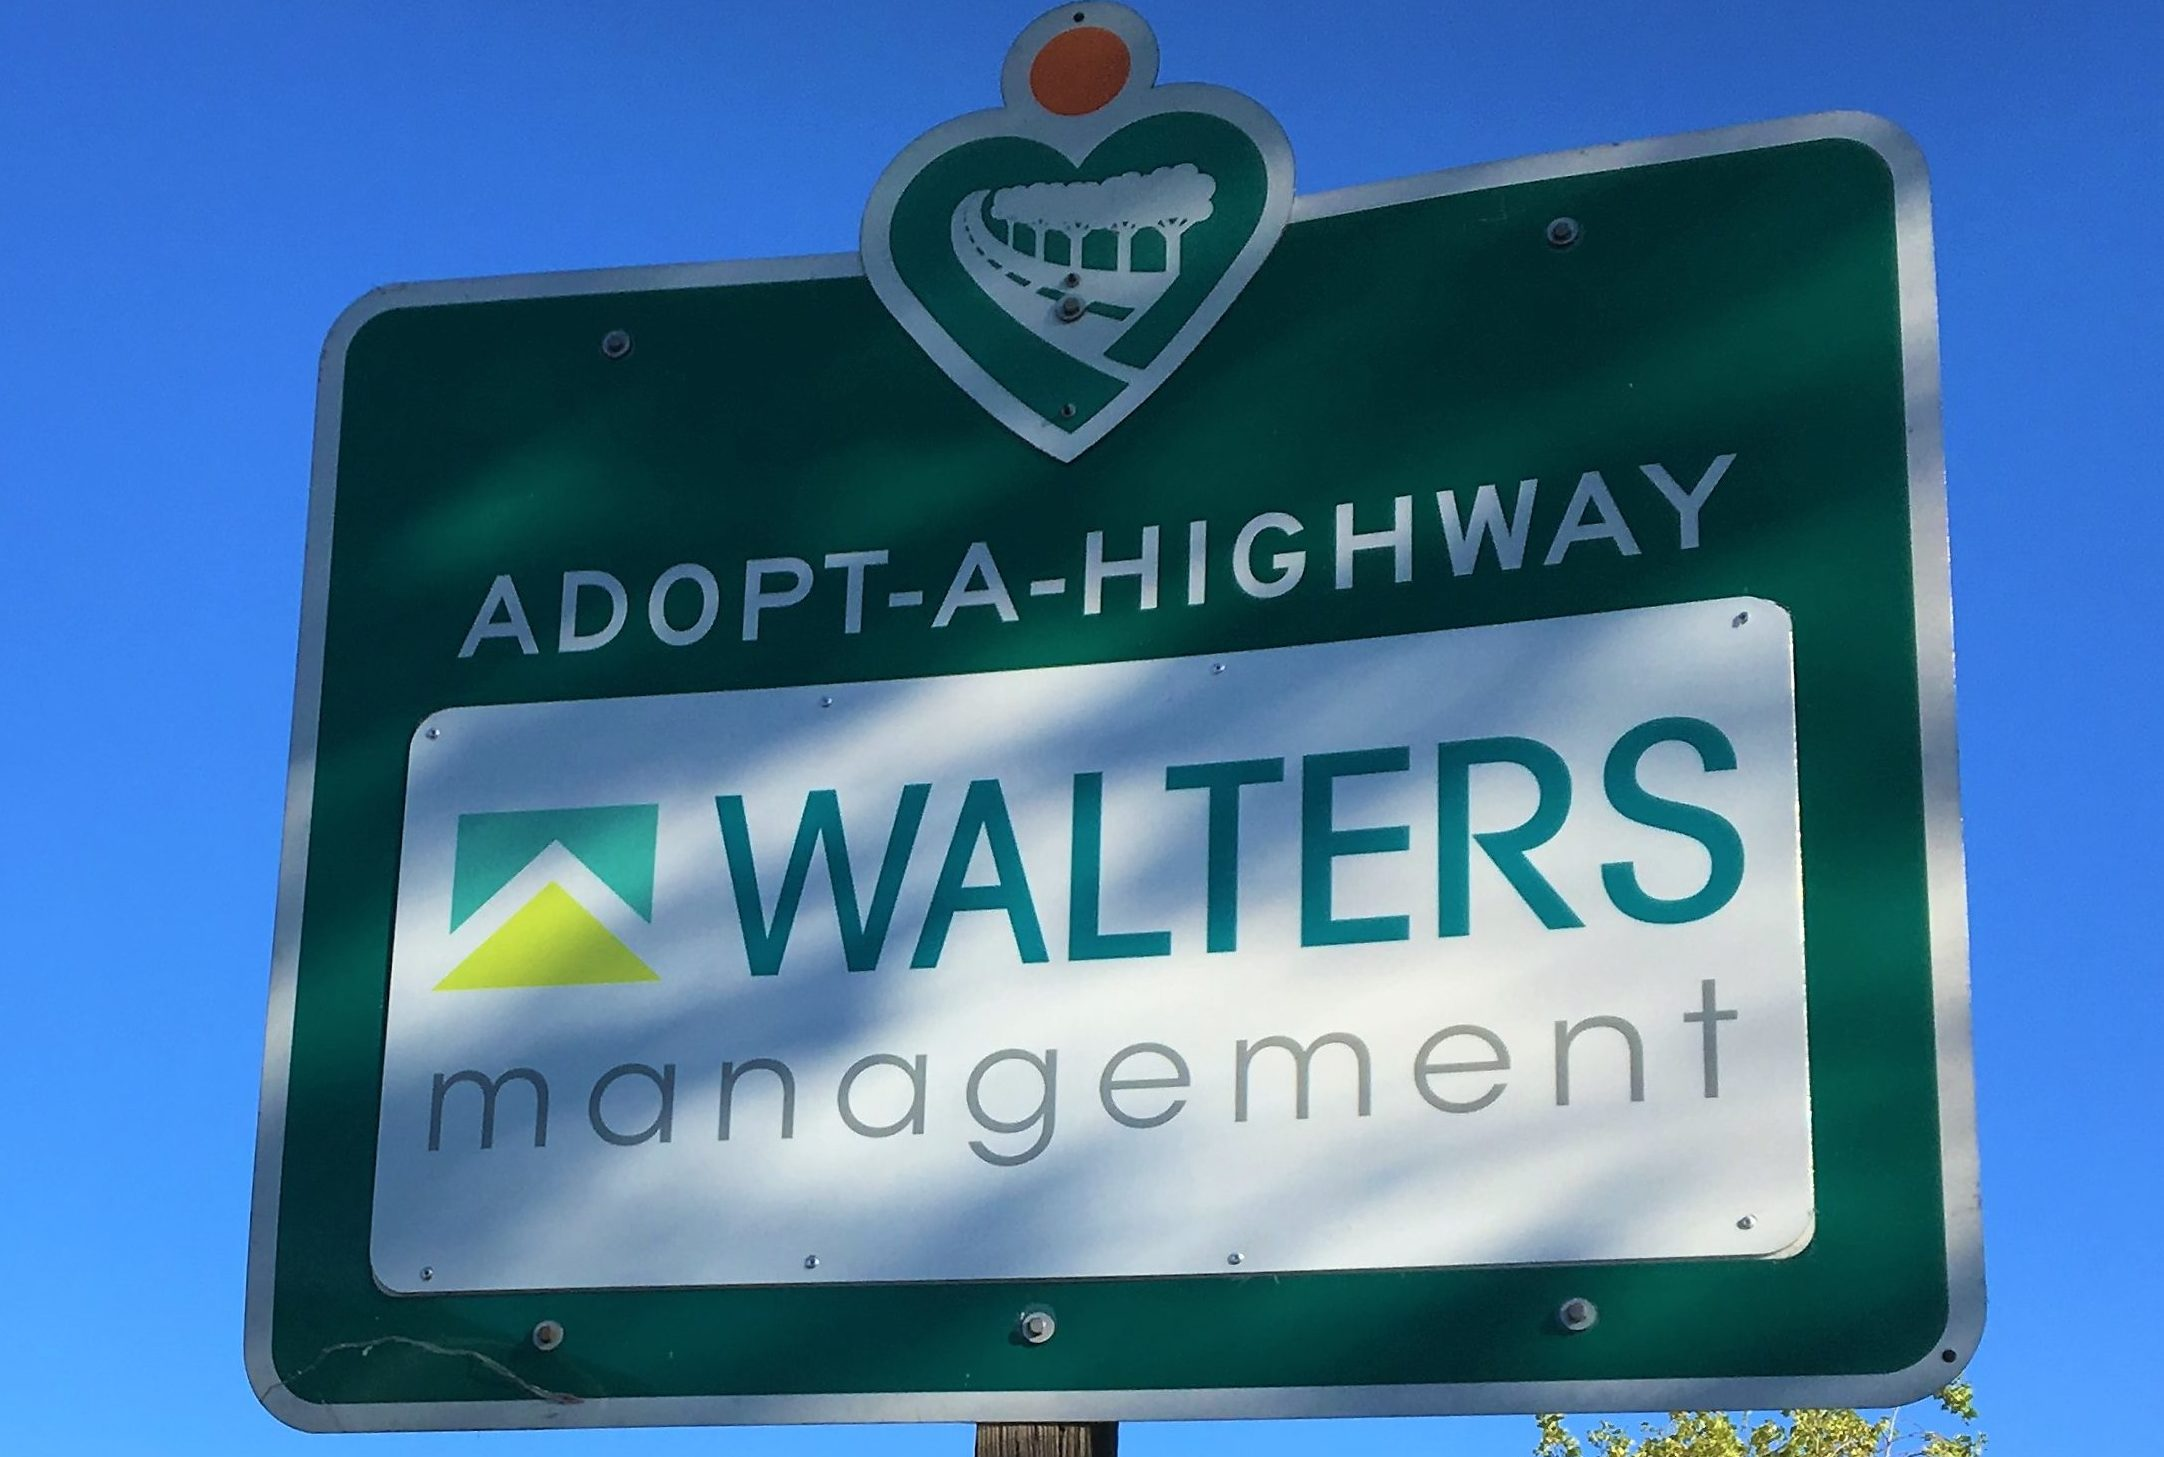 adopt-a-highway-walters-management